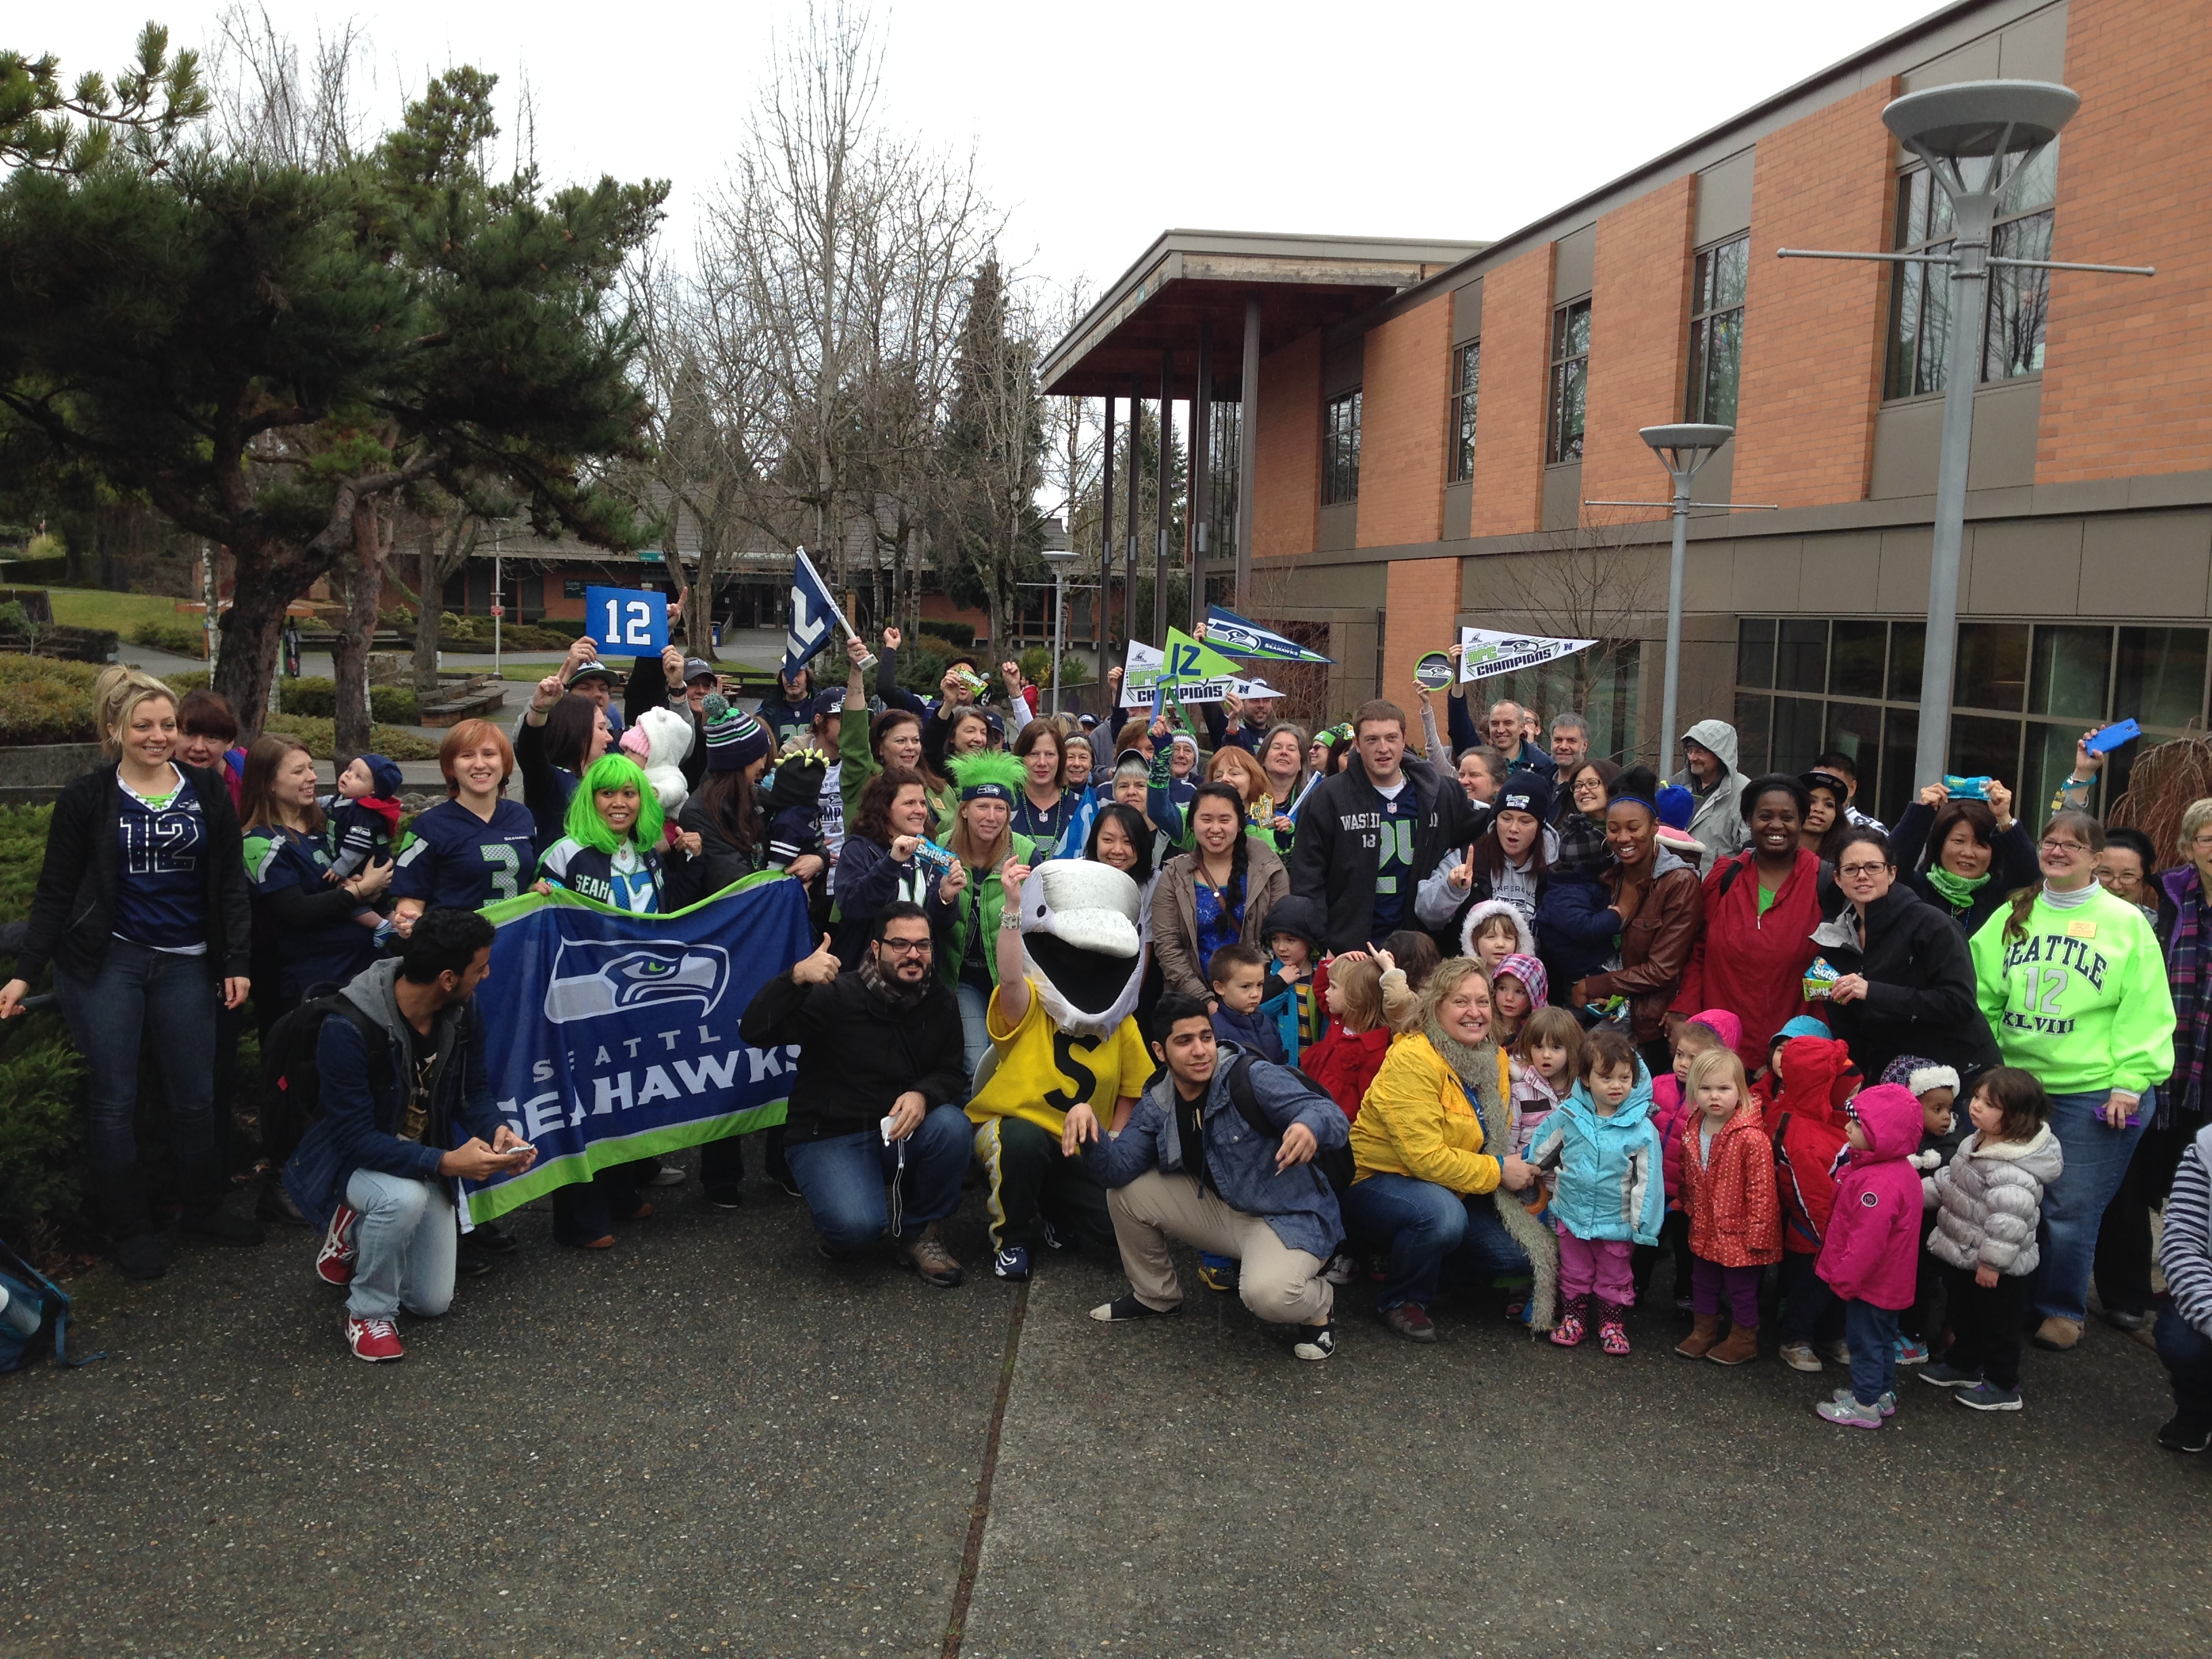 Dolphie Raises the 12th Man Flag with Shoreline Students